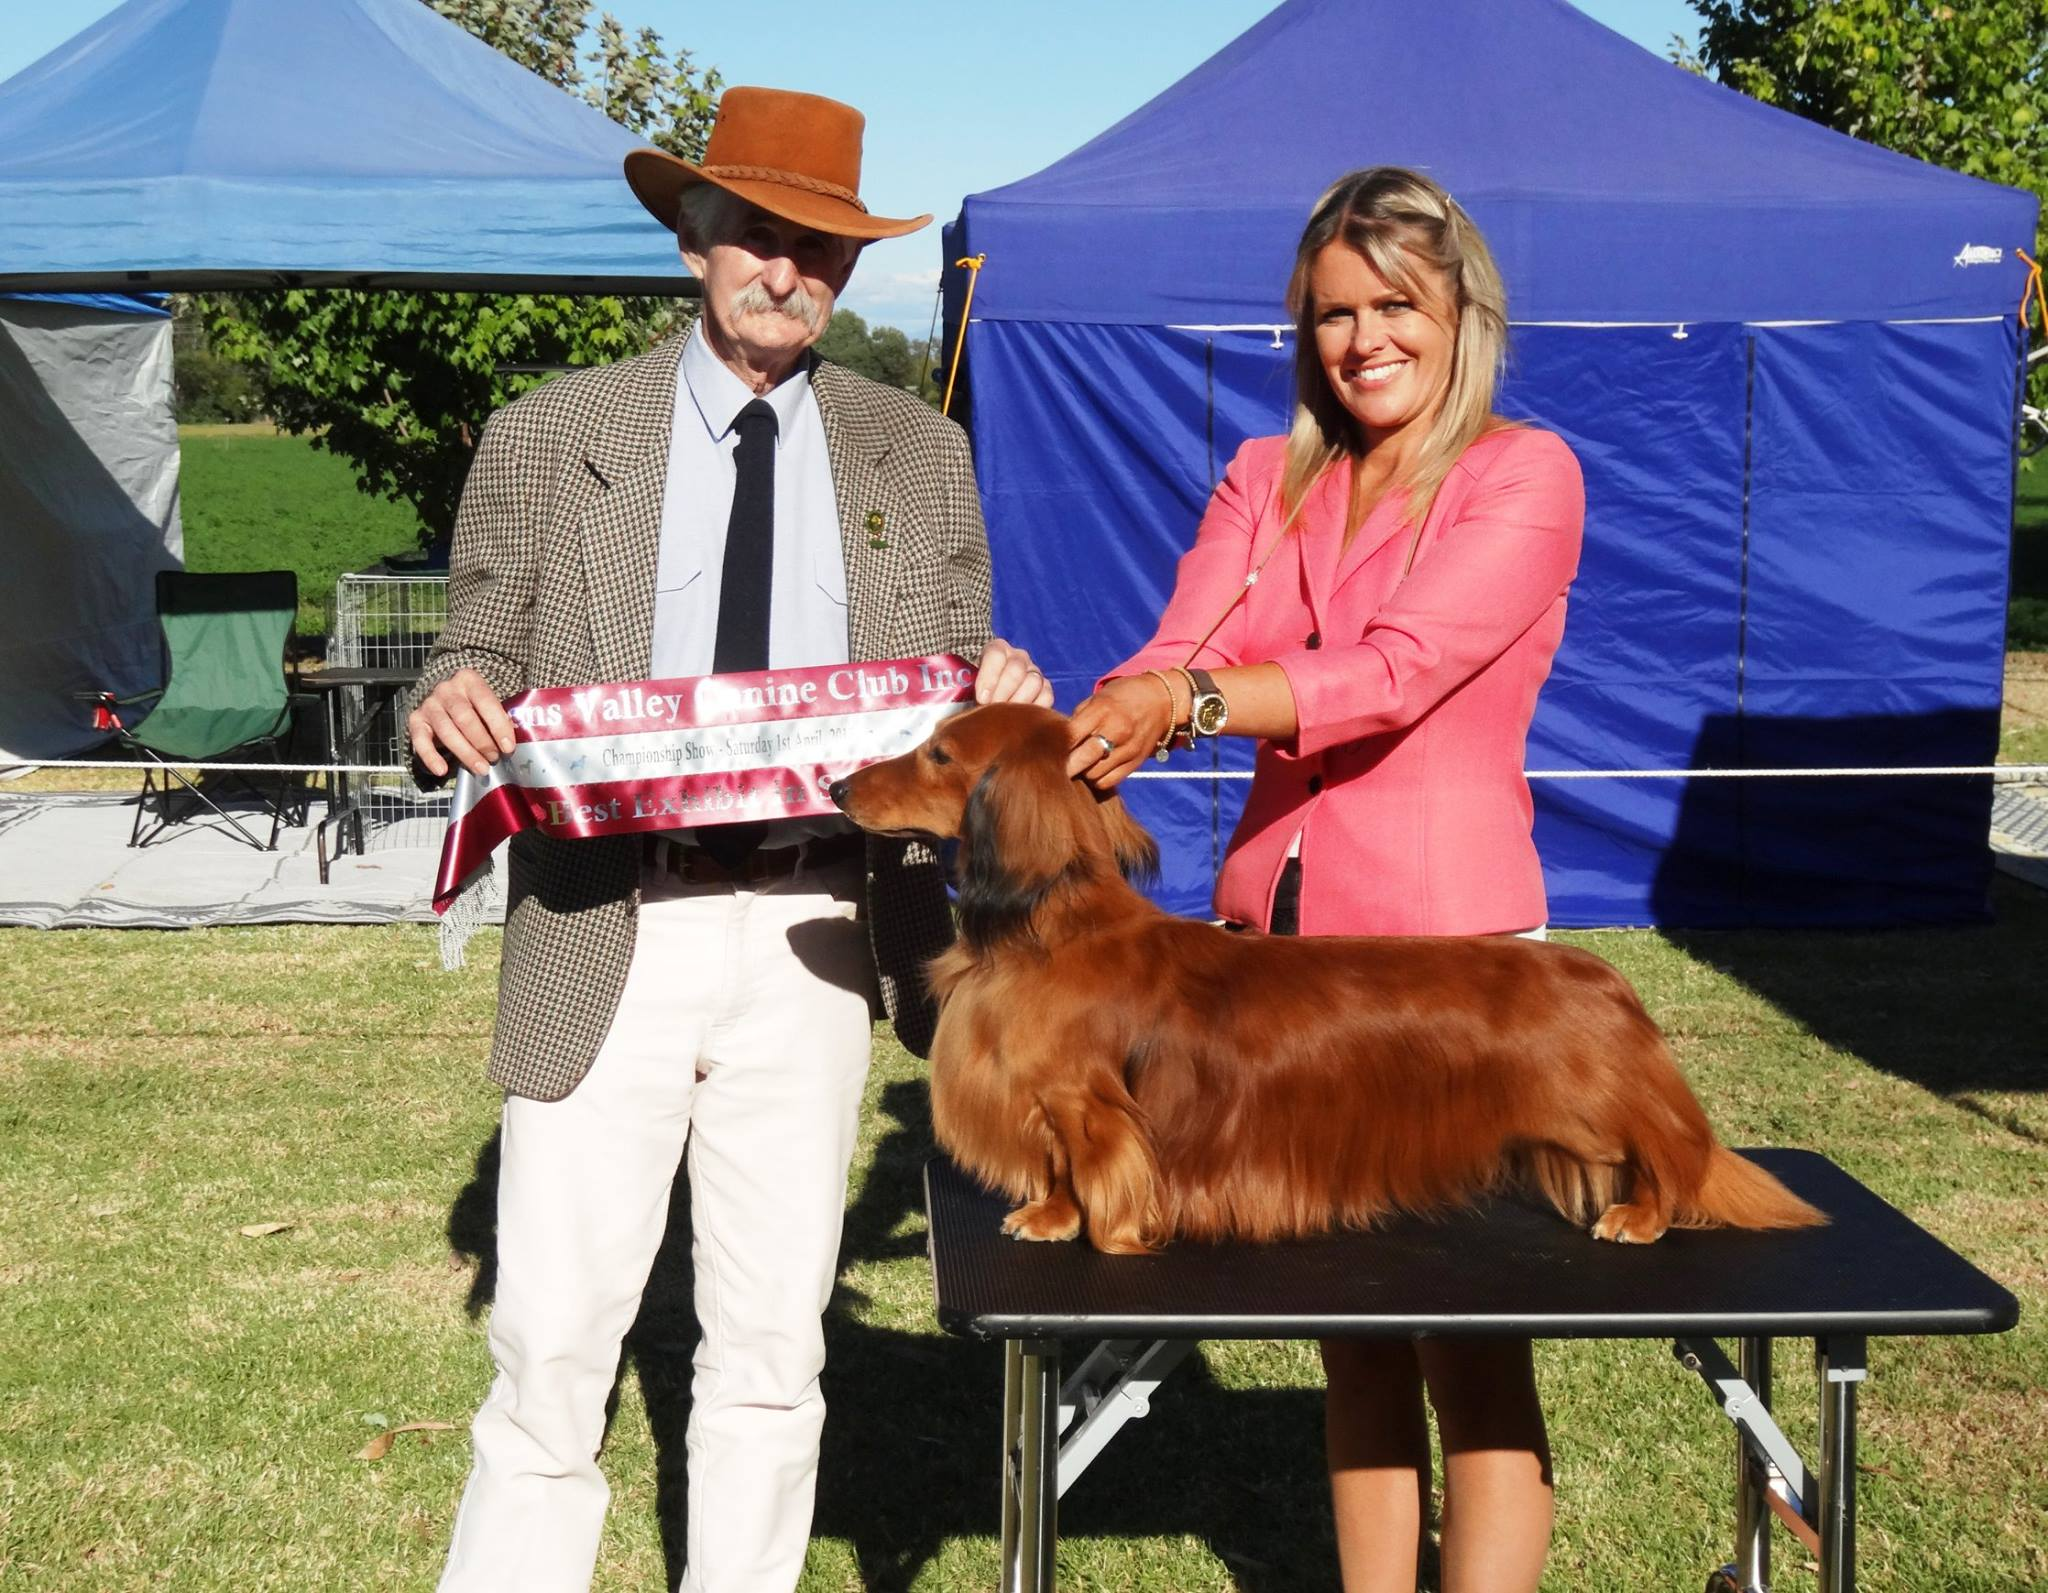 'Jimmy' awarded Best in Show at the Ovens Valley Canine Club Inc. Championship Show